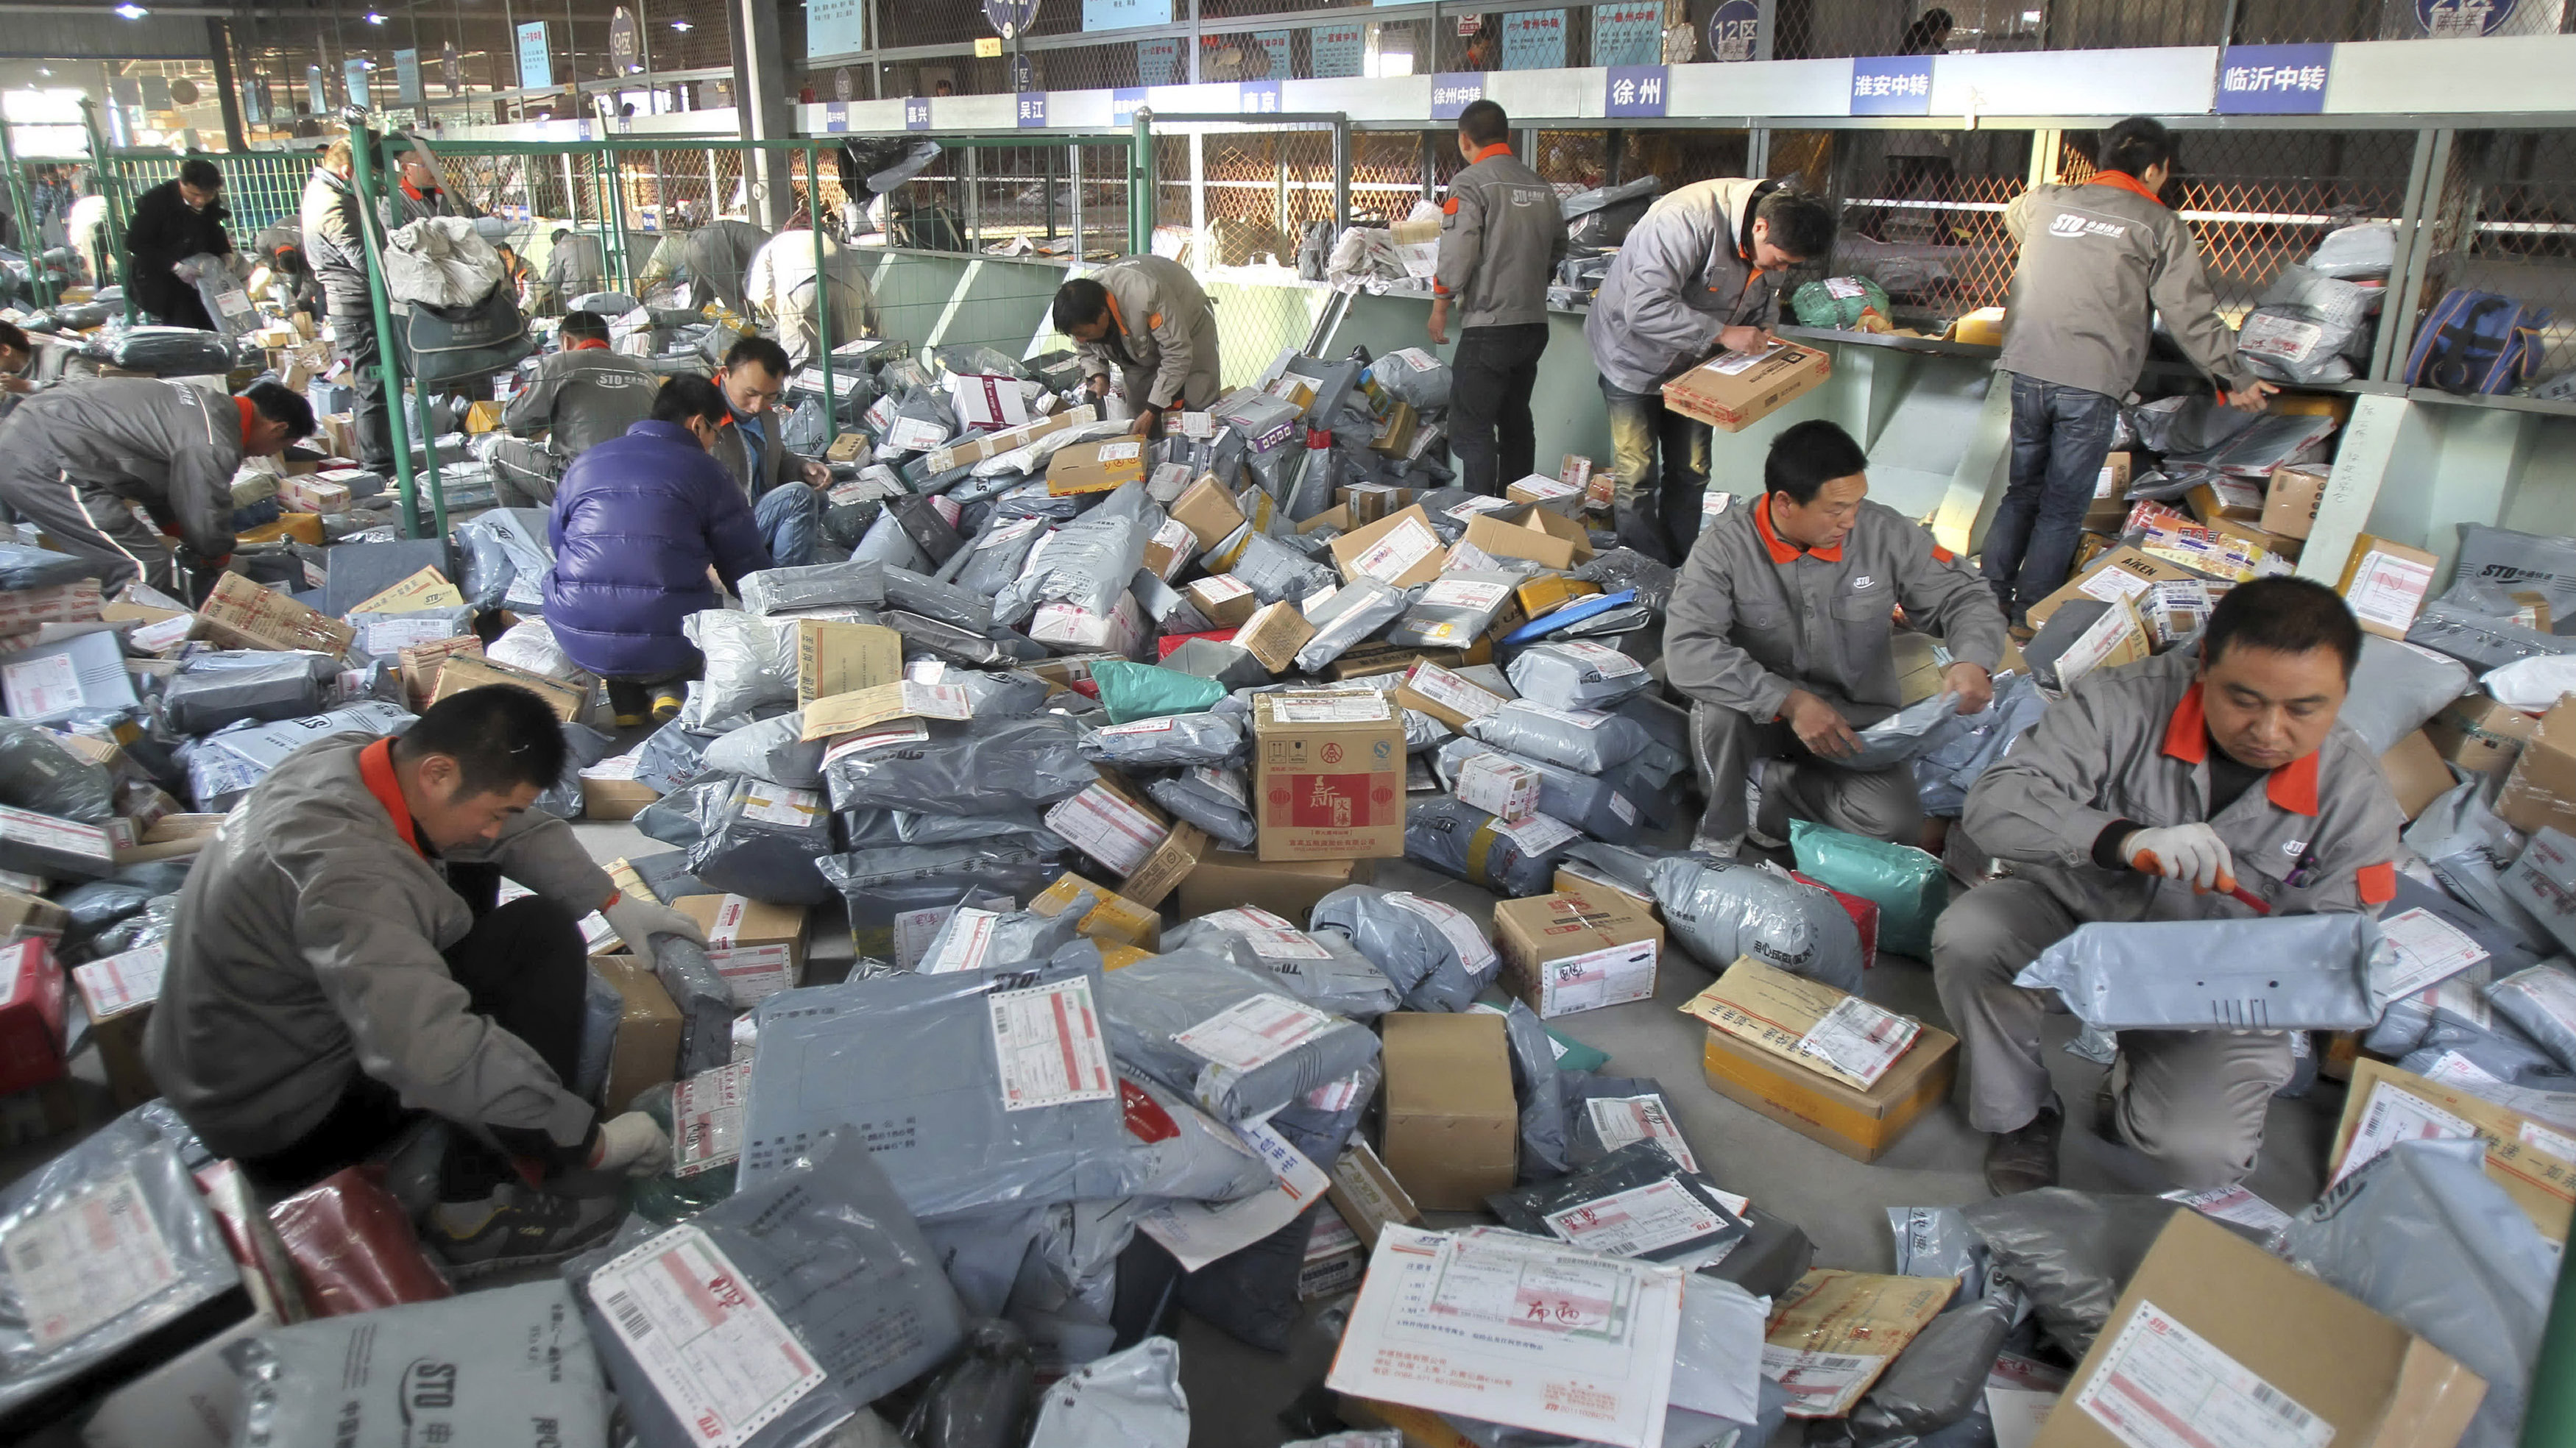 Employees sort packages at a hub of an express delivery company in Nantong, Jiangsu province.